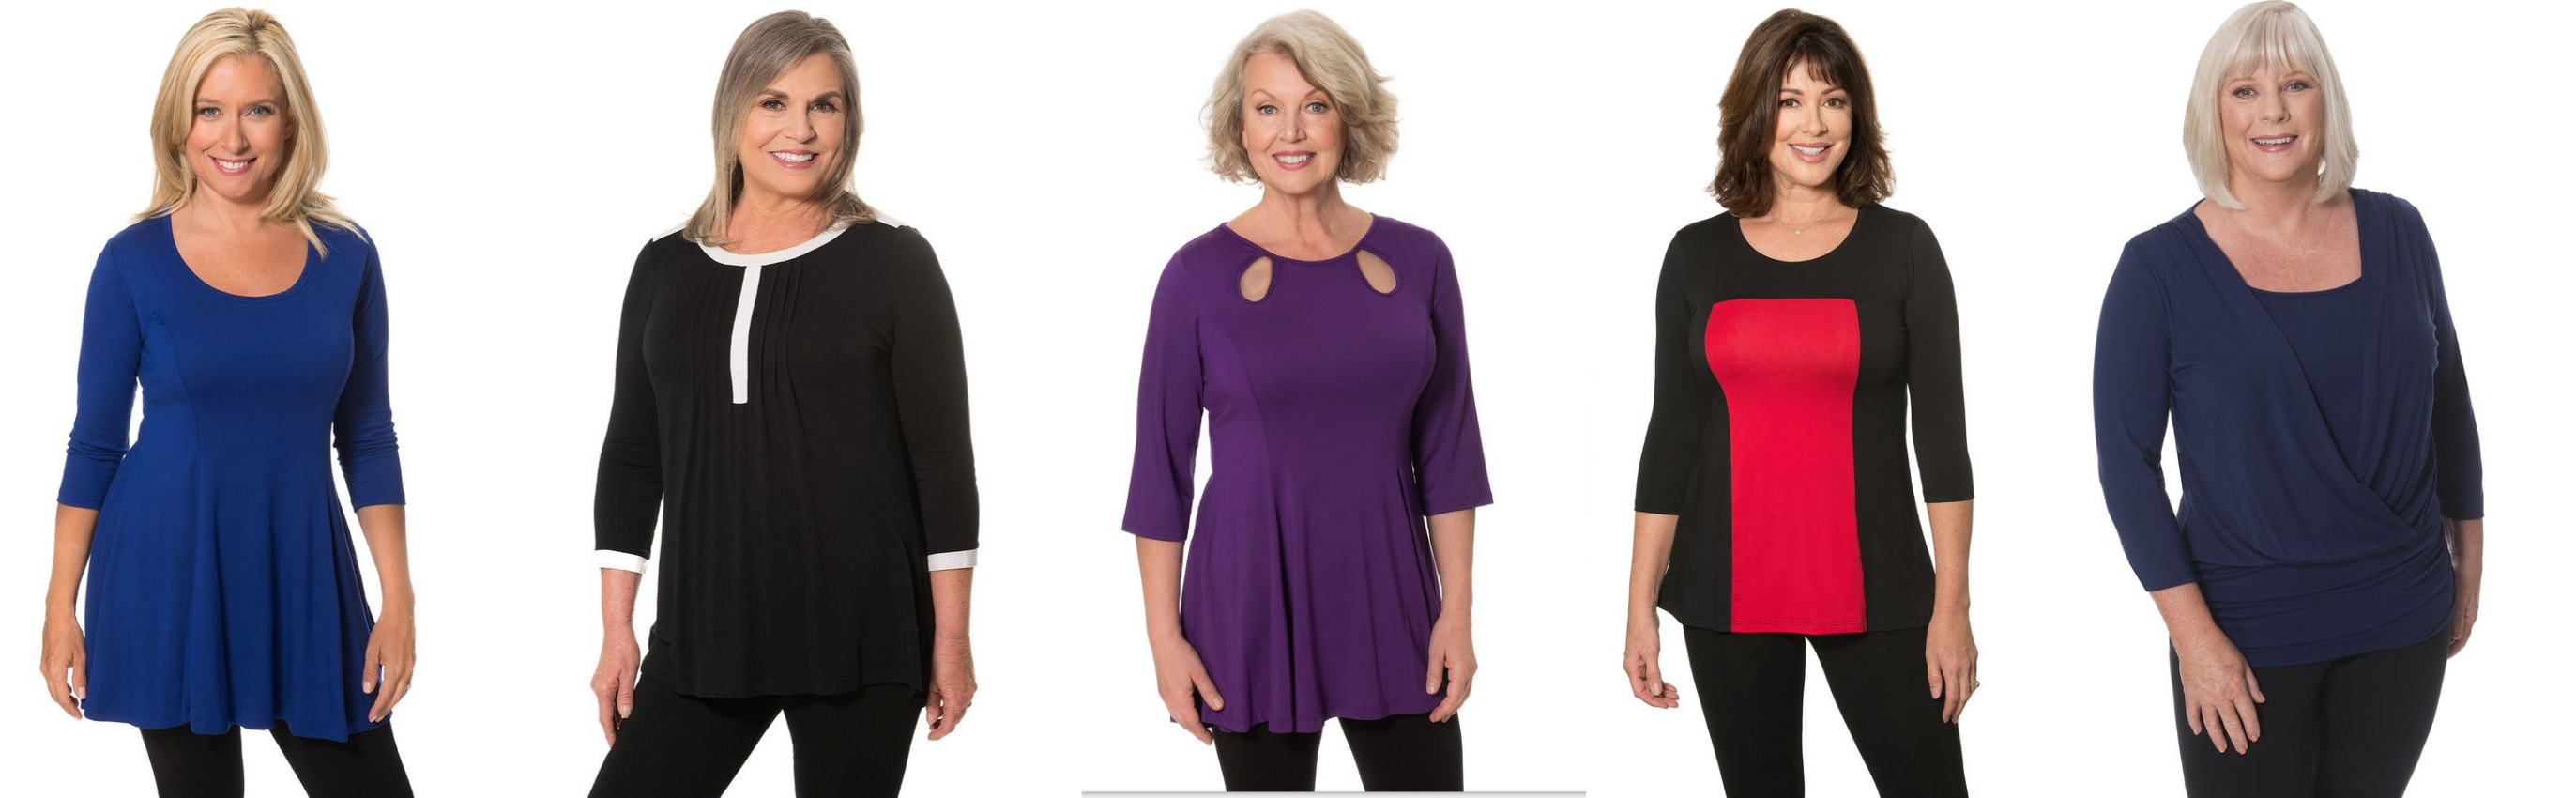 Covered Perfectly tops don't cling and hide tummy bulge #covered perfectly #hide tummy fat https://www.style-yourself-confident.com/hide-tummy-fat.html